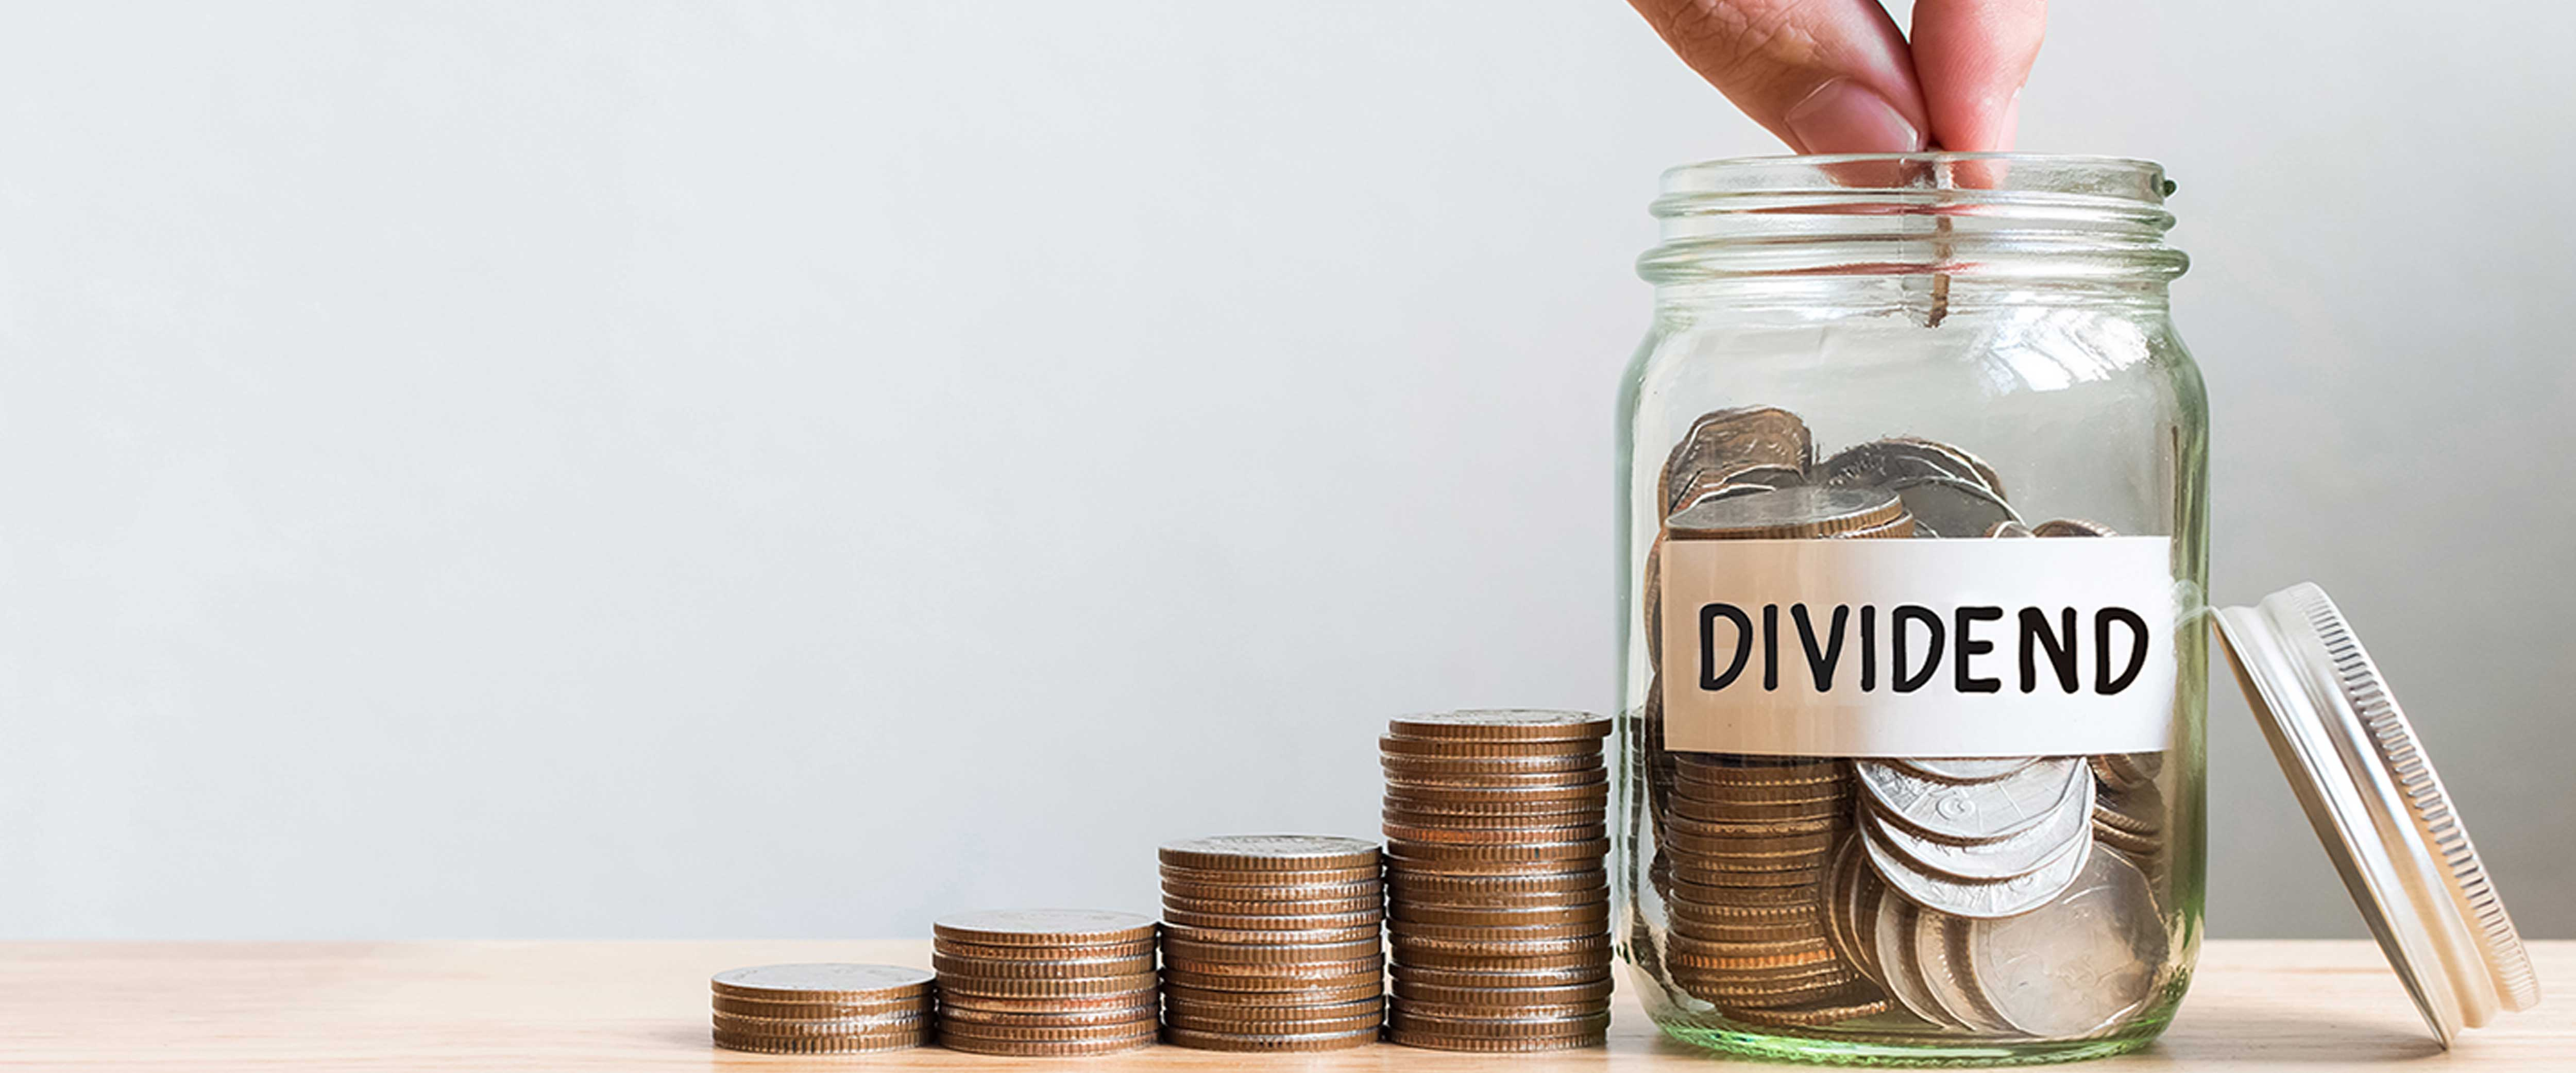 stocks sorted by dividend yield